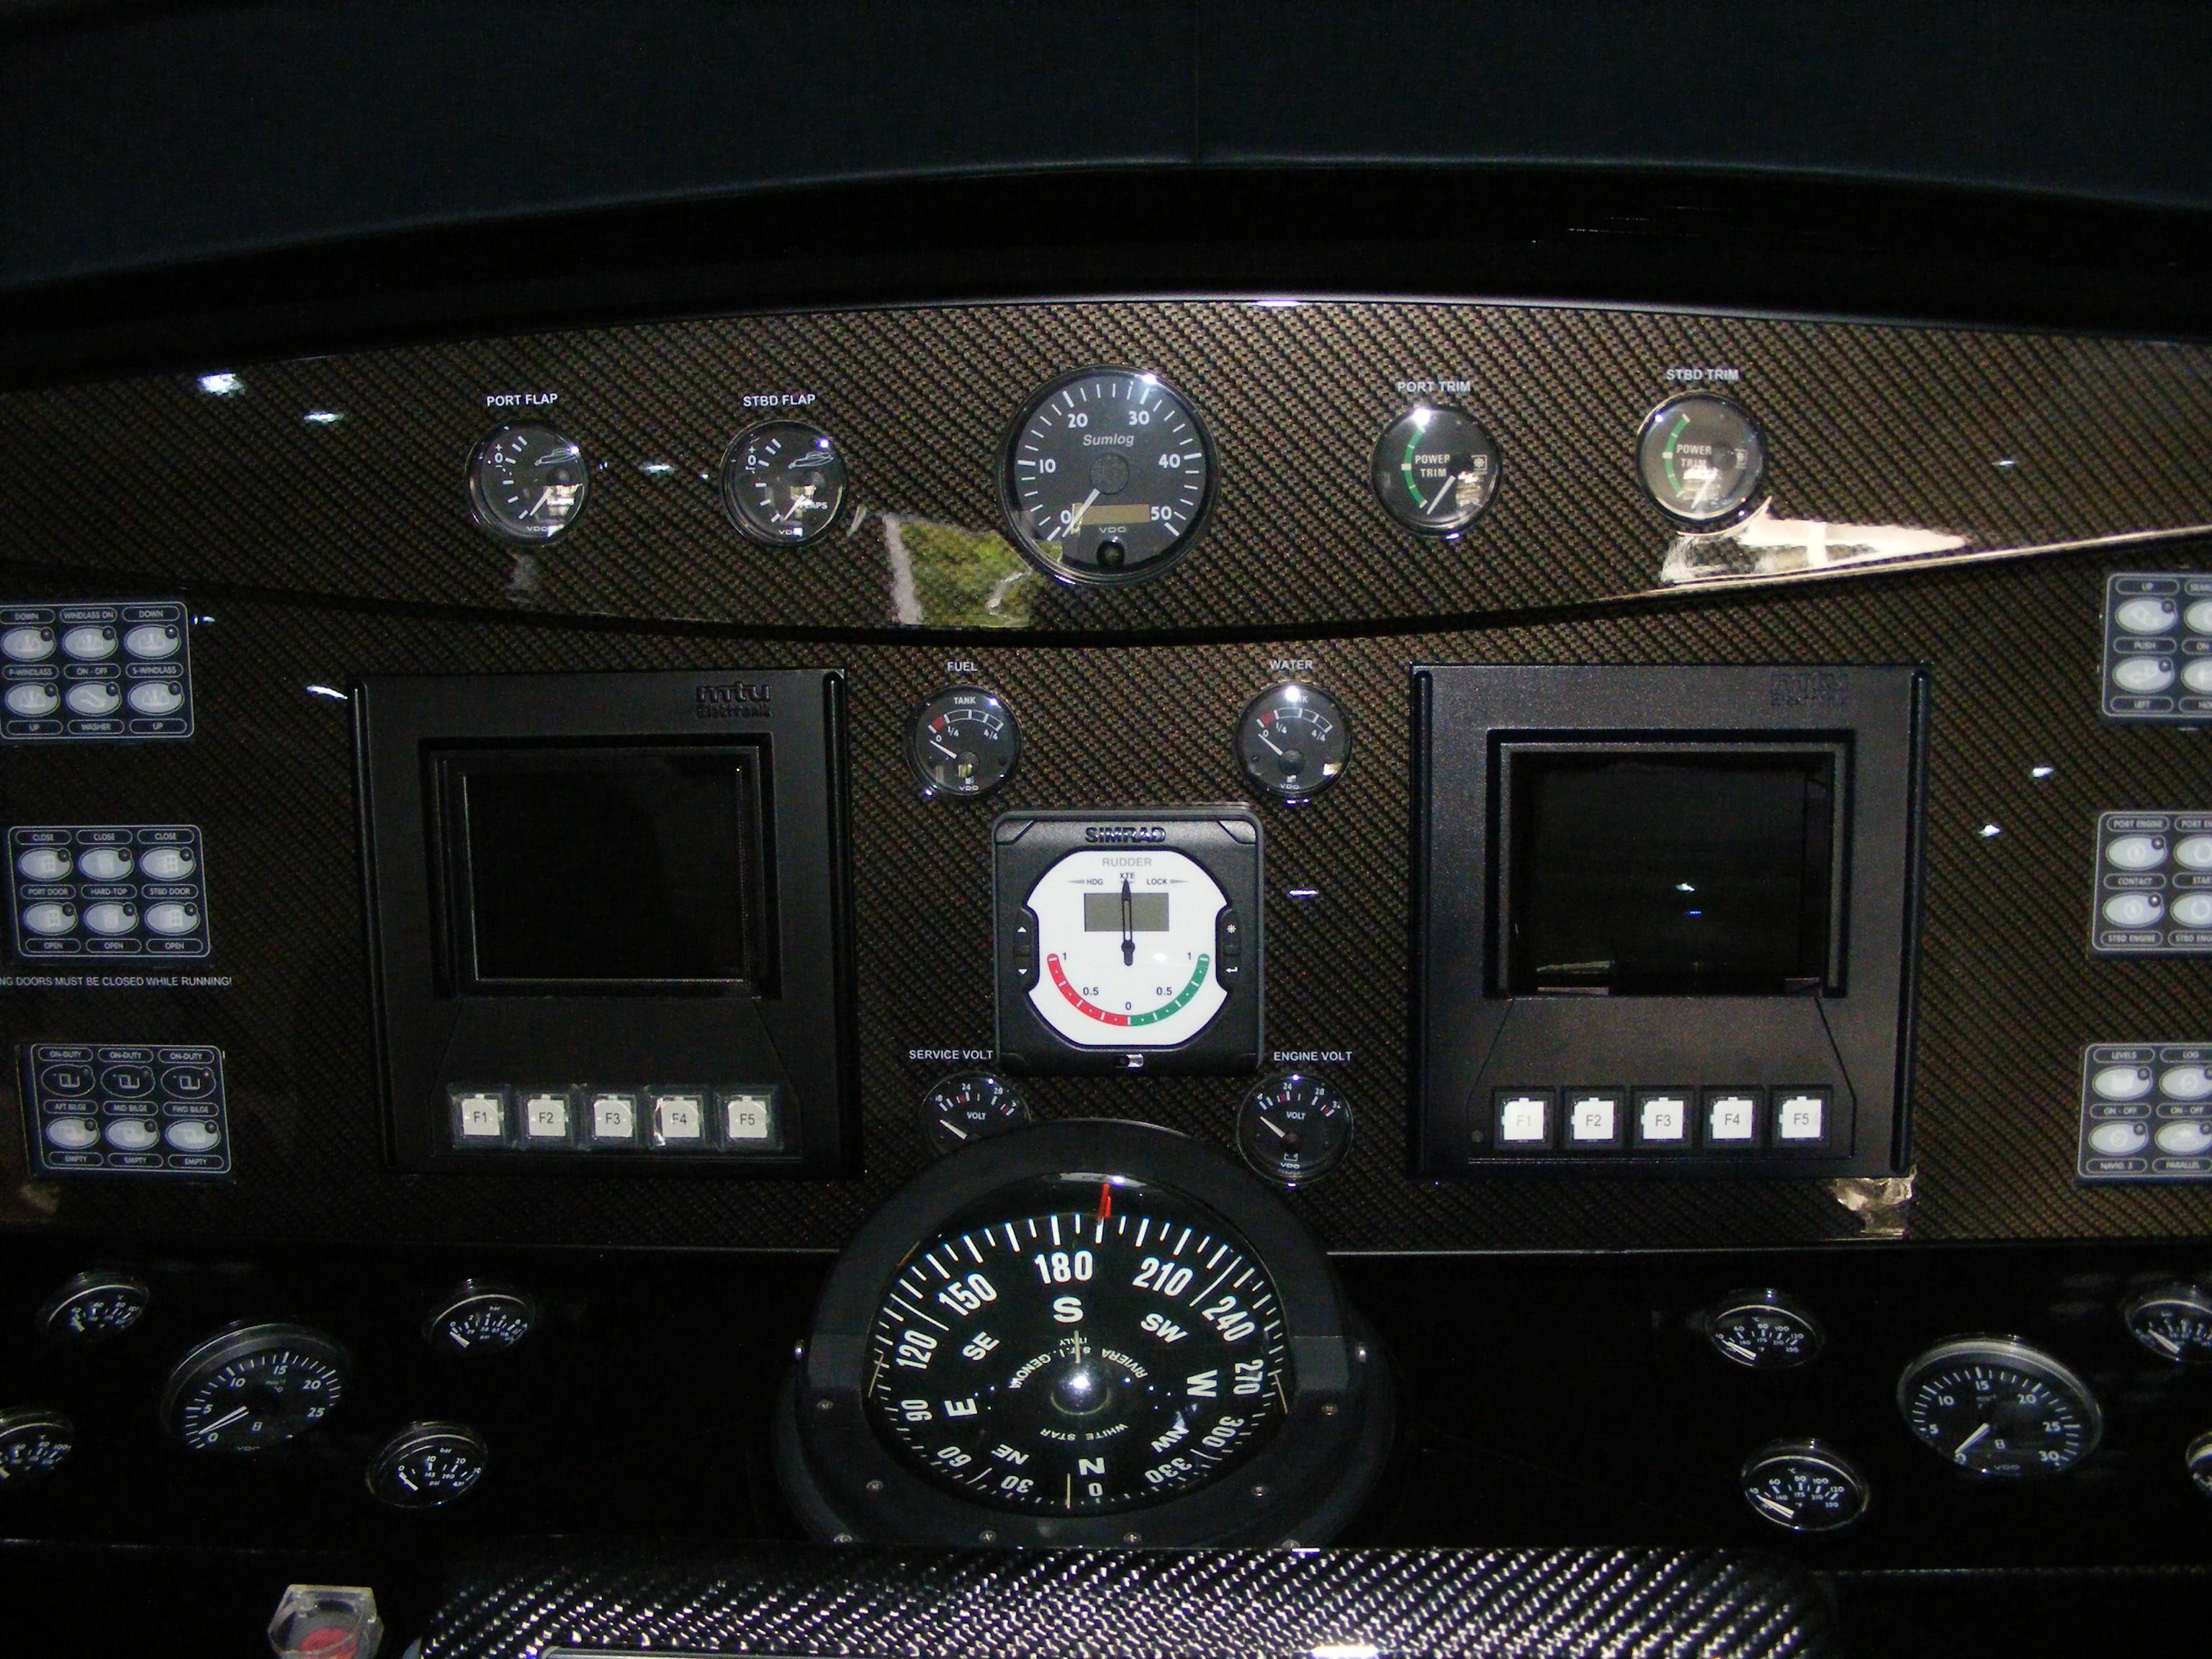 2002 Pershing 88 - Custom Carbon Fiber Dash